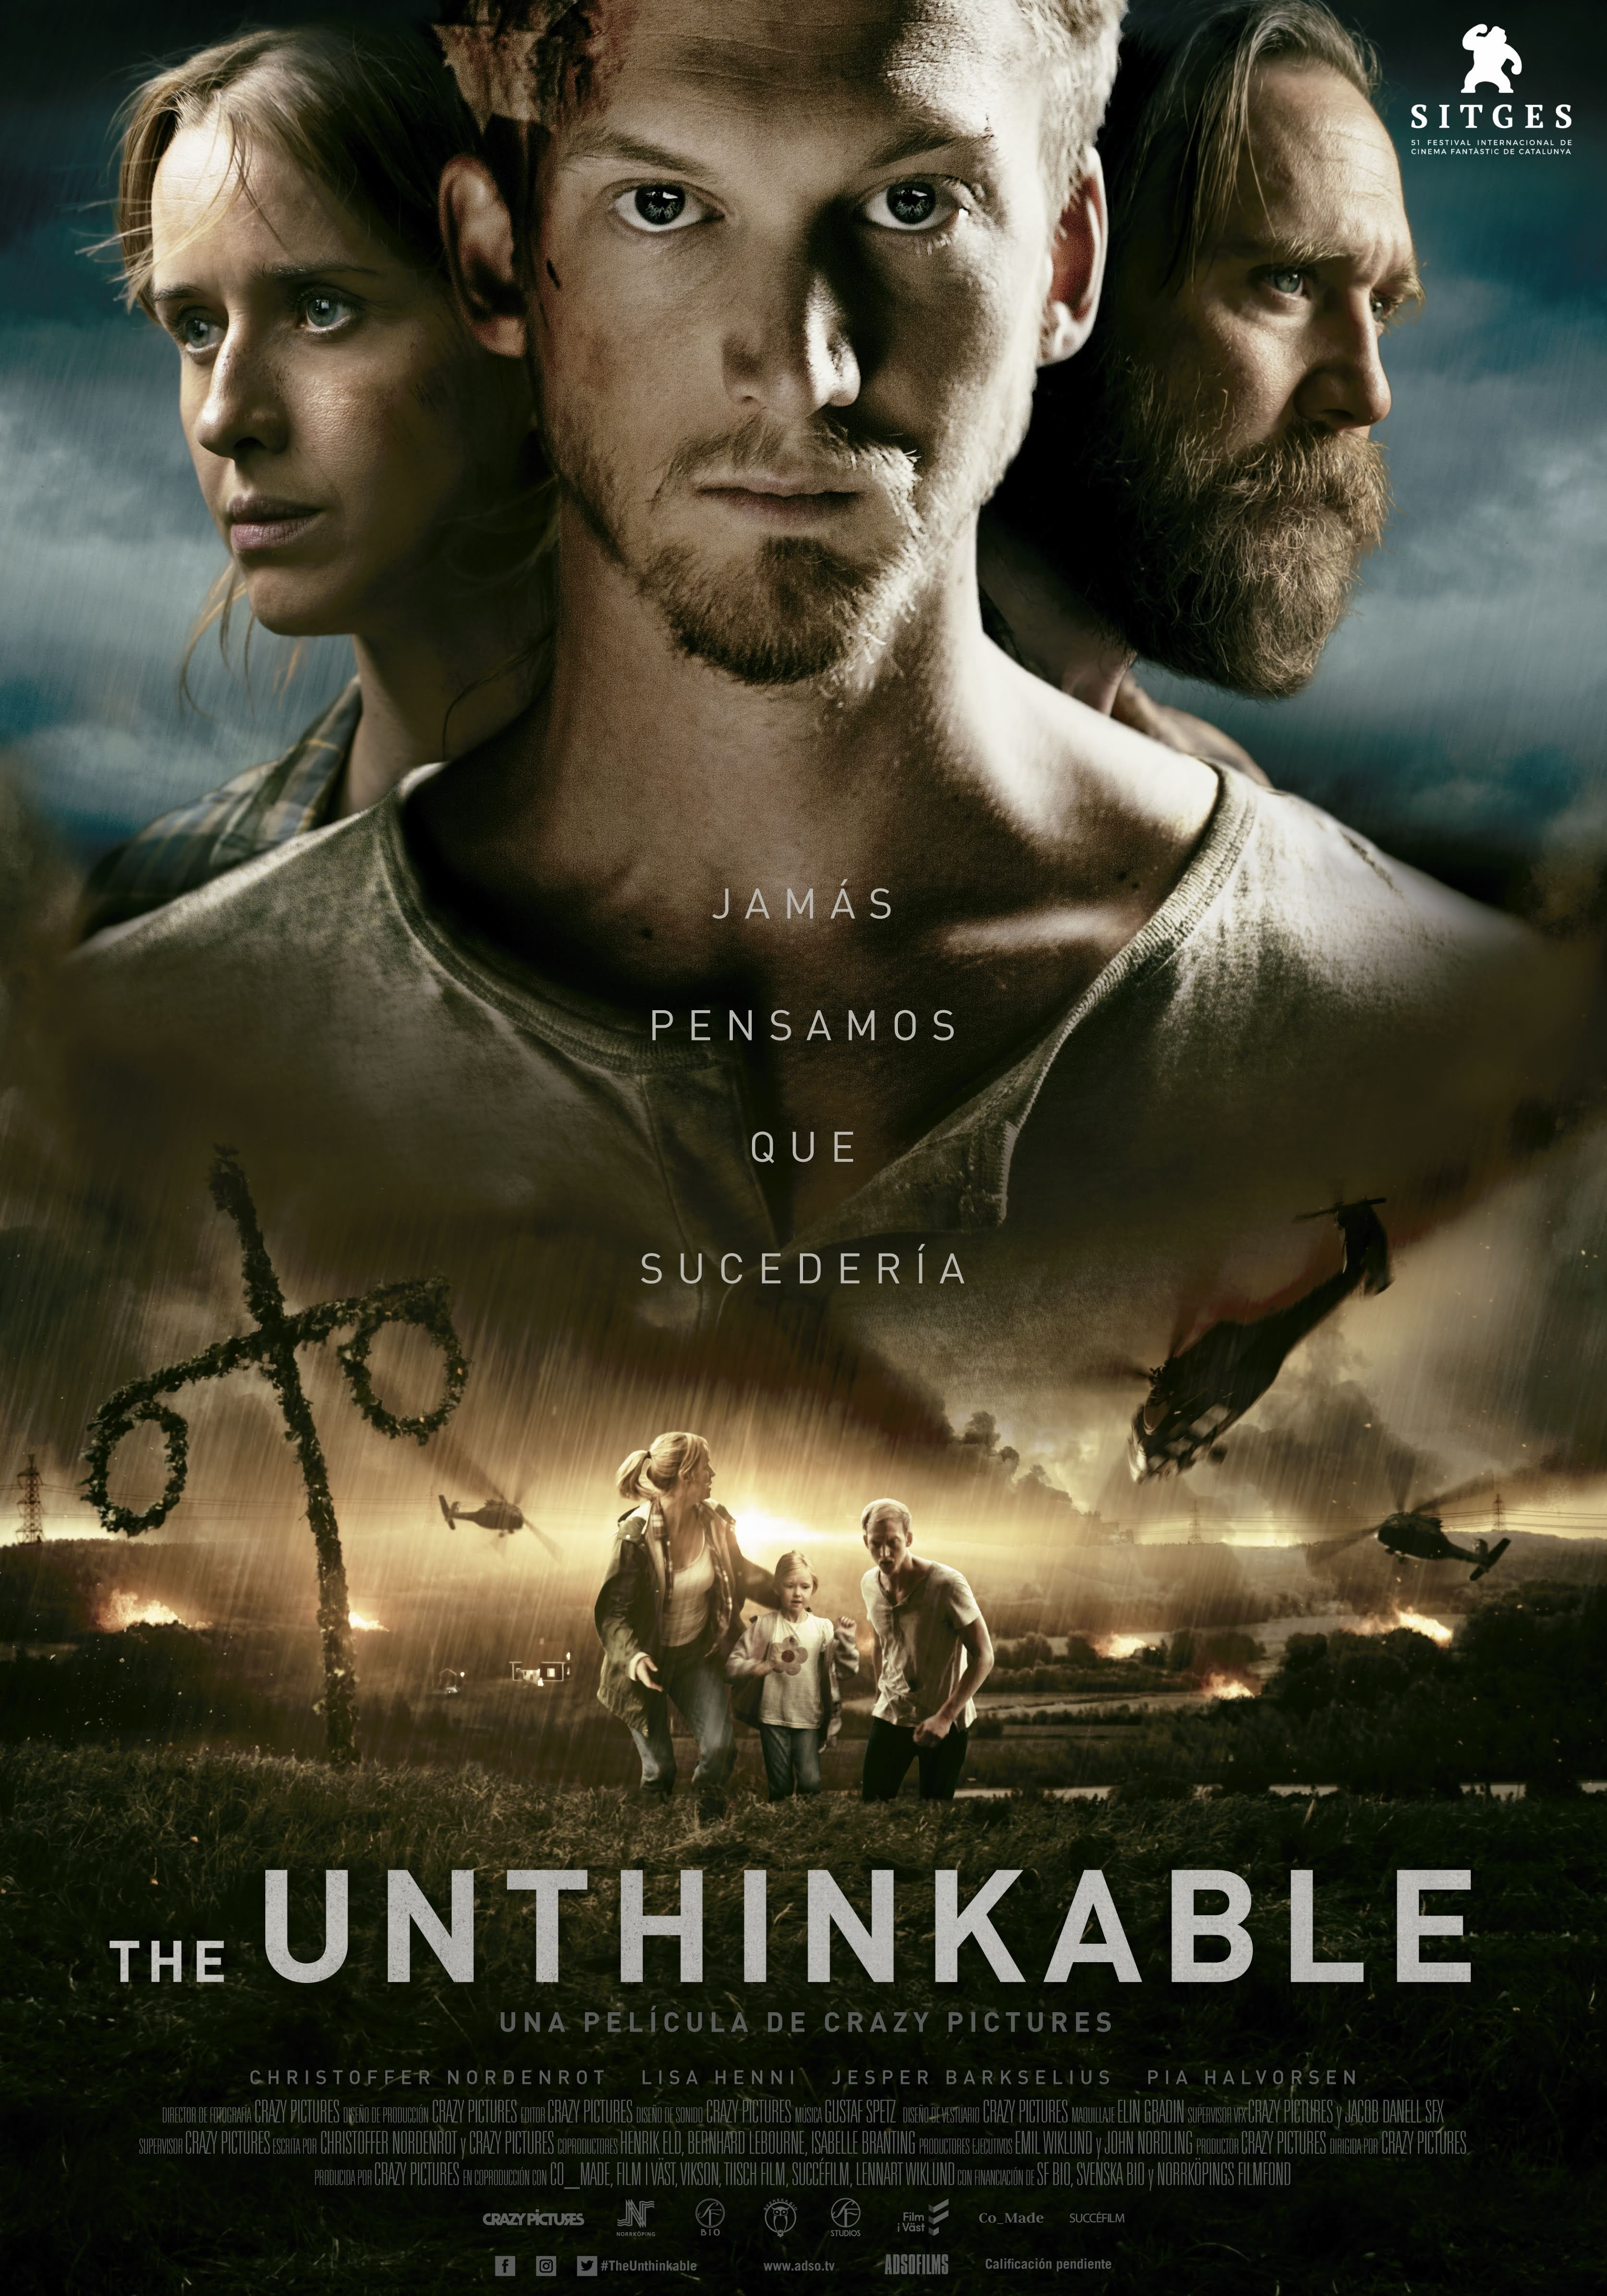 the unthinkable 2018 streaming movies movies online y